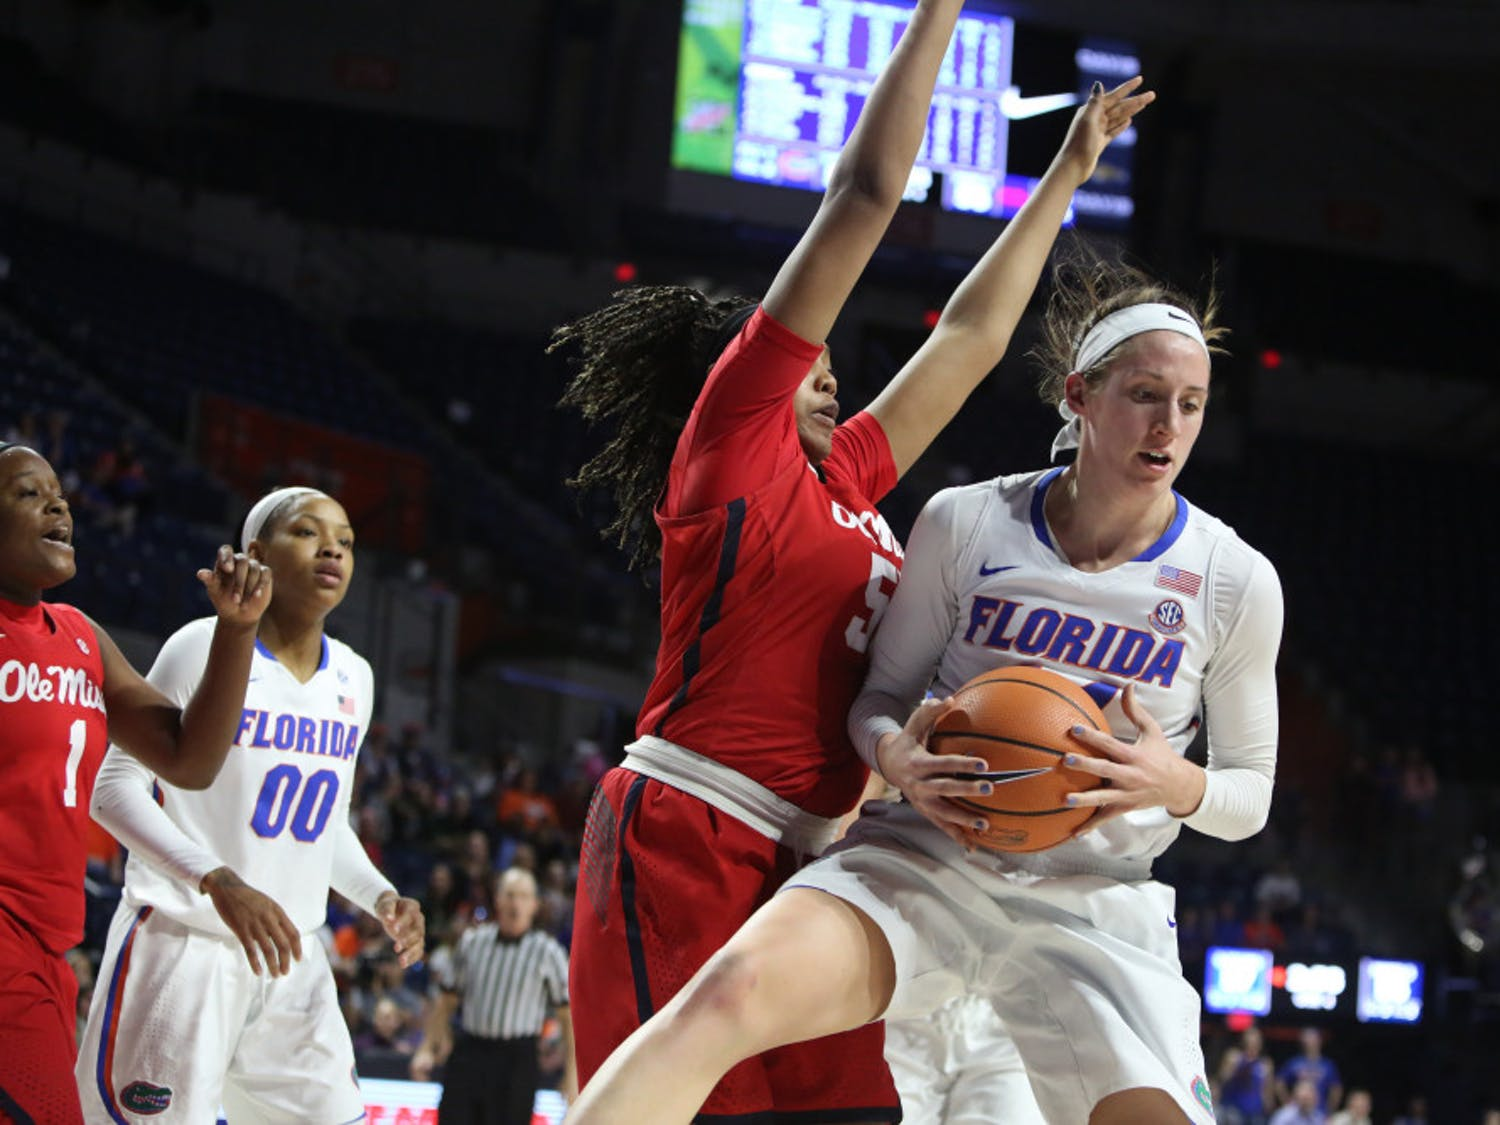 Forward Haley Lorenzen will play her last game at the O'Connell Center as a Gator Thursday night against Tennessee.